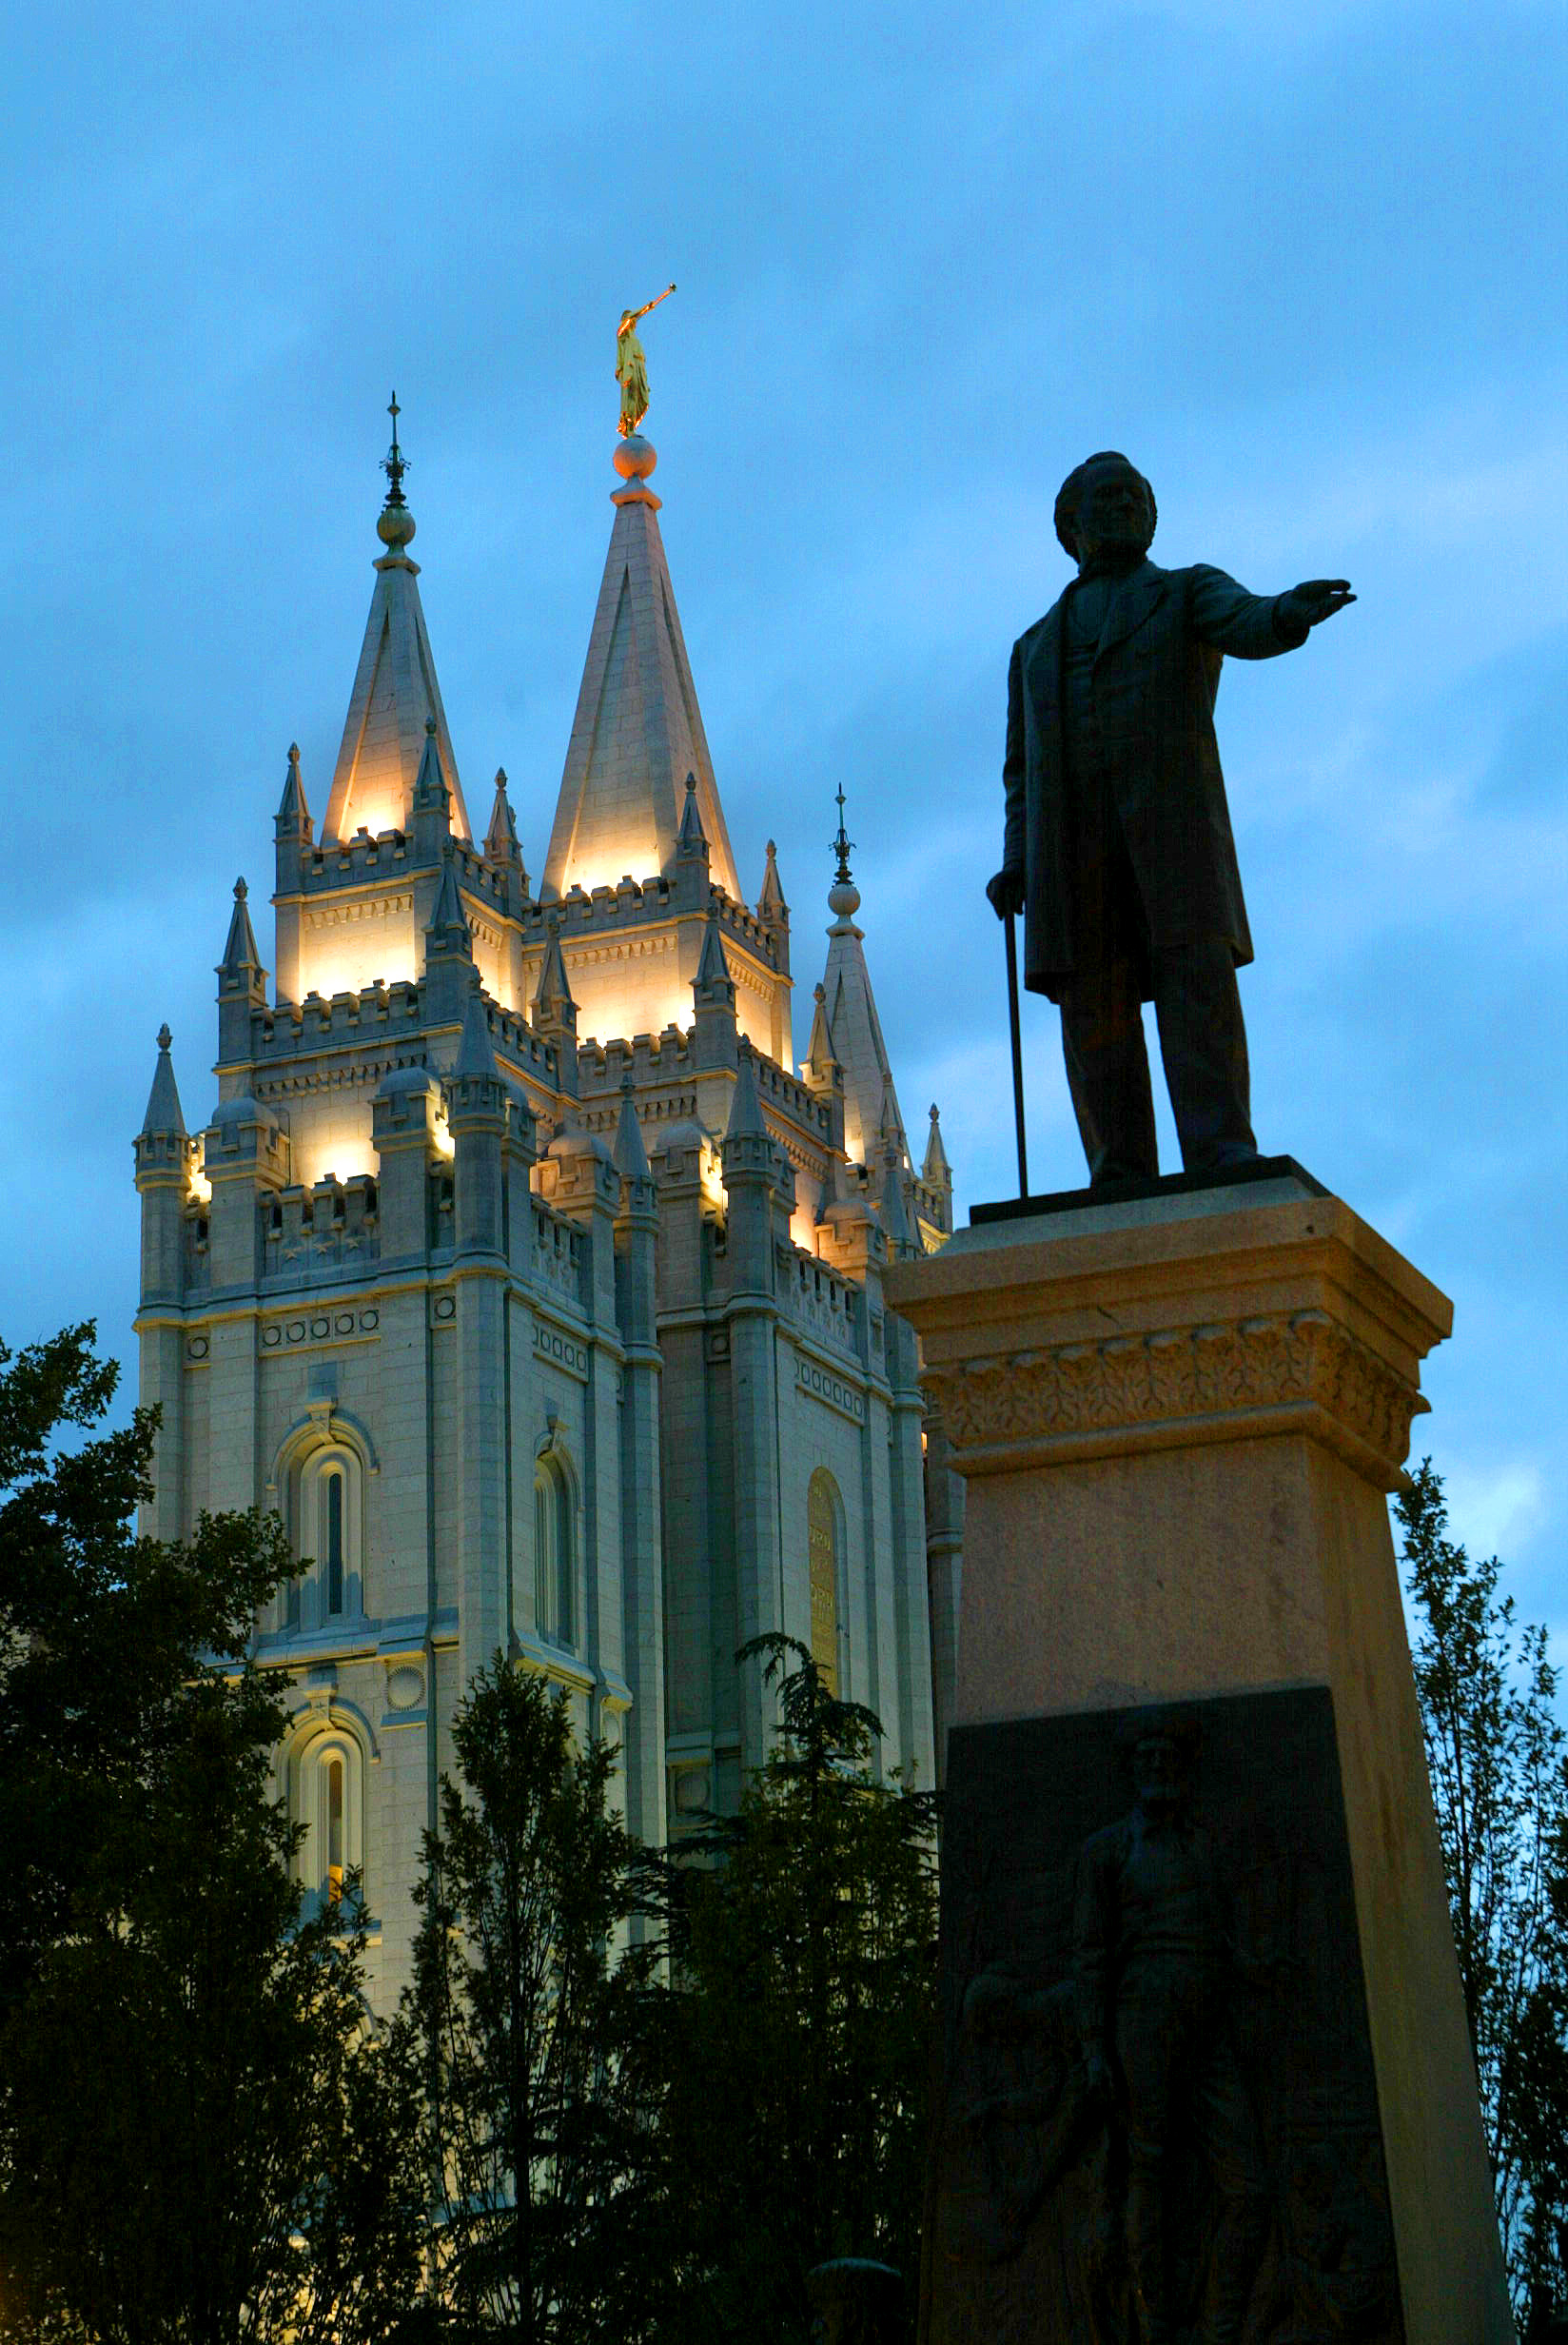 Brigham Young's statue in the foreground of the Salt lake City Temple, Oct. 4, 2002. Photo by Tom Smart (Submission date: 10/04/2002)